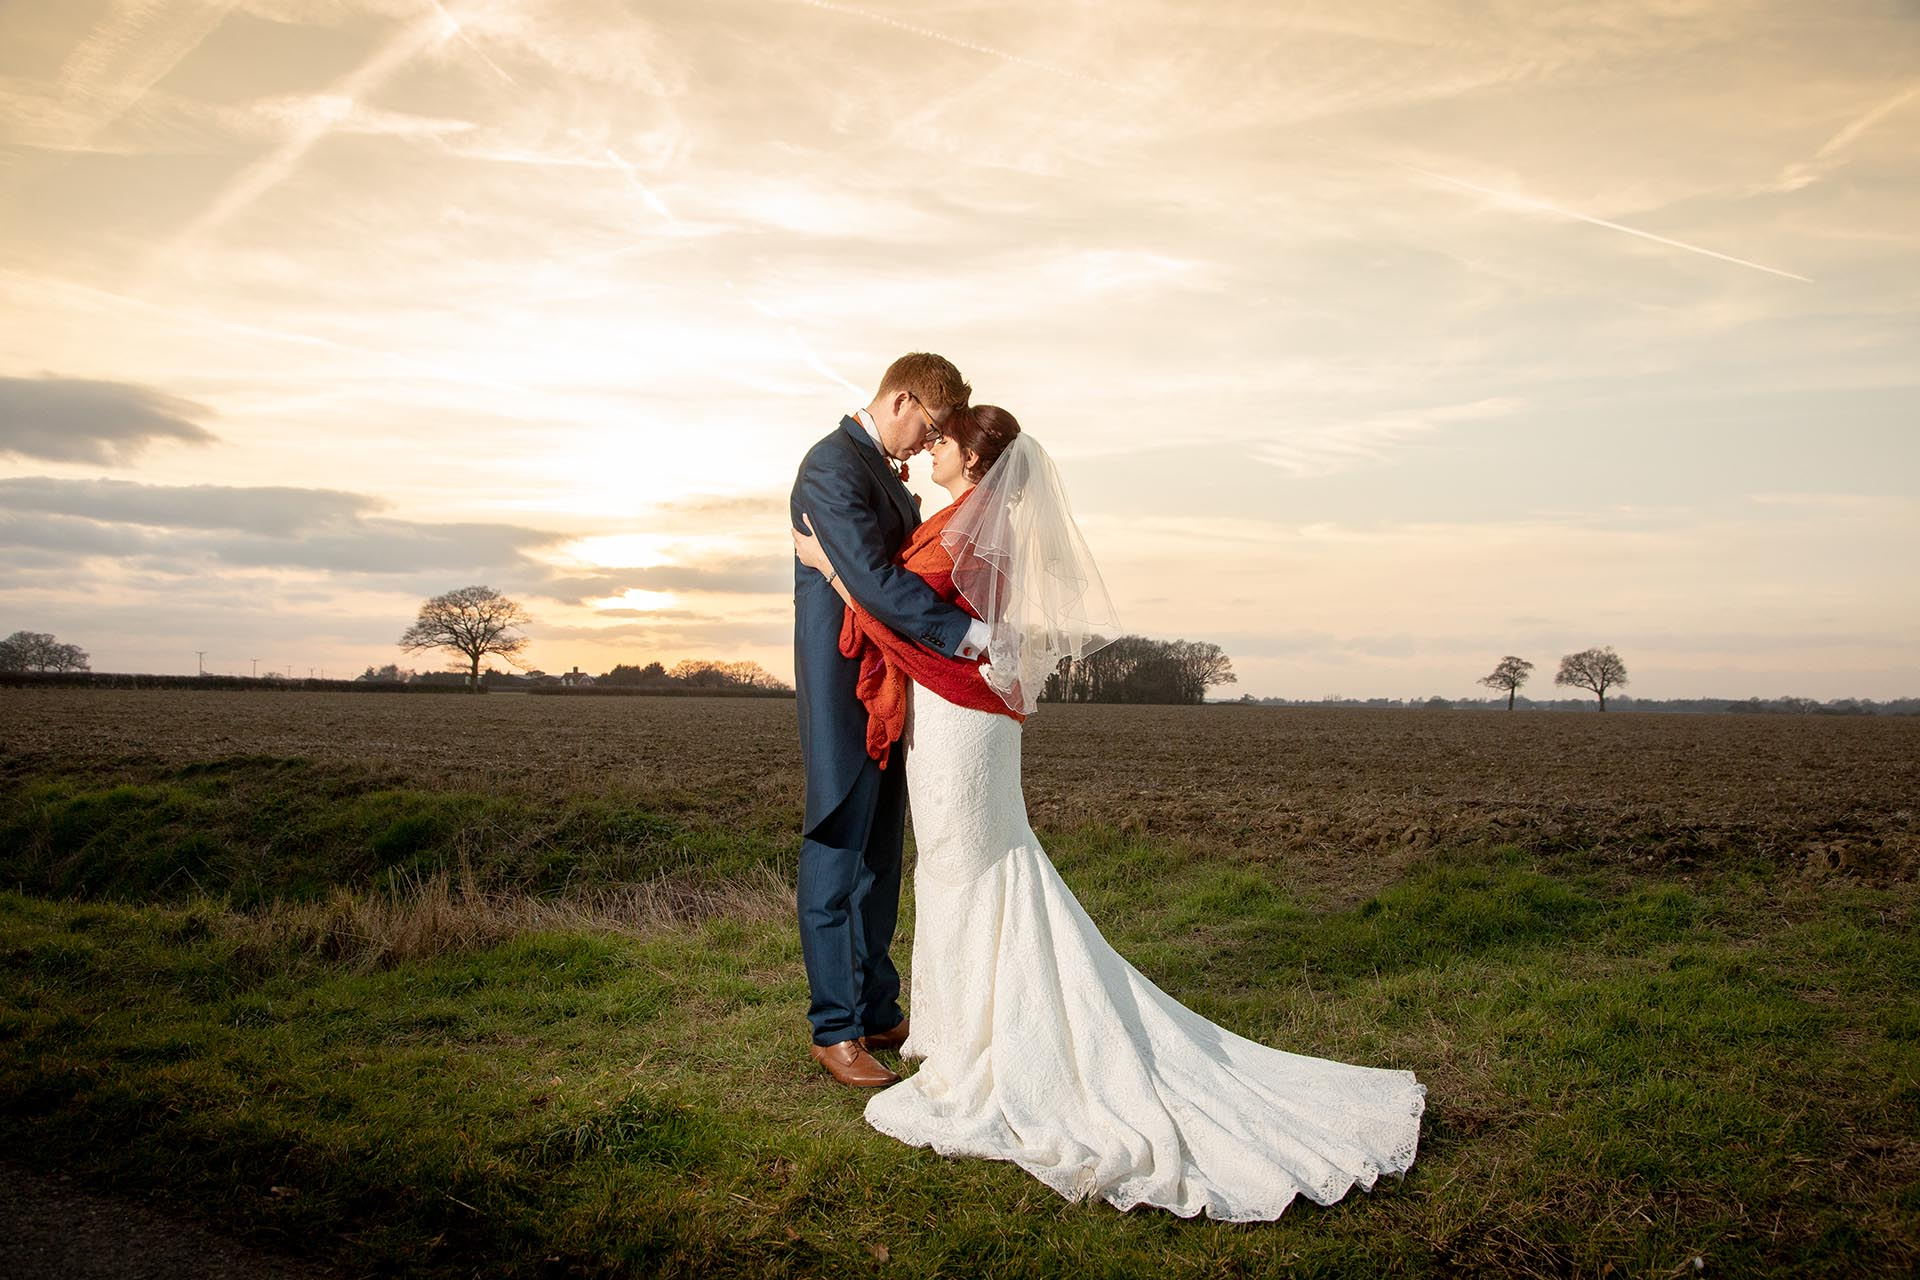 Romantic wedding couple at The Compasses at Pattiswick favourite five wedding photographs